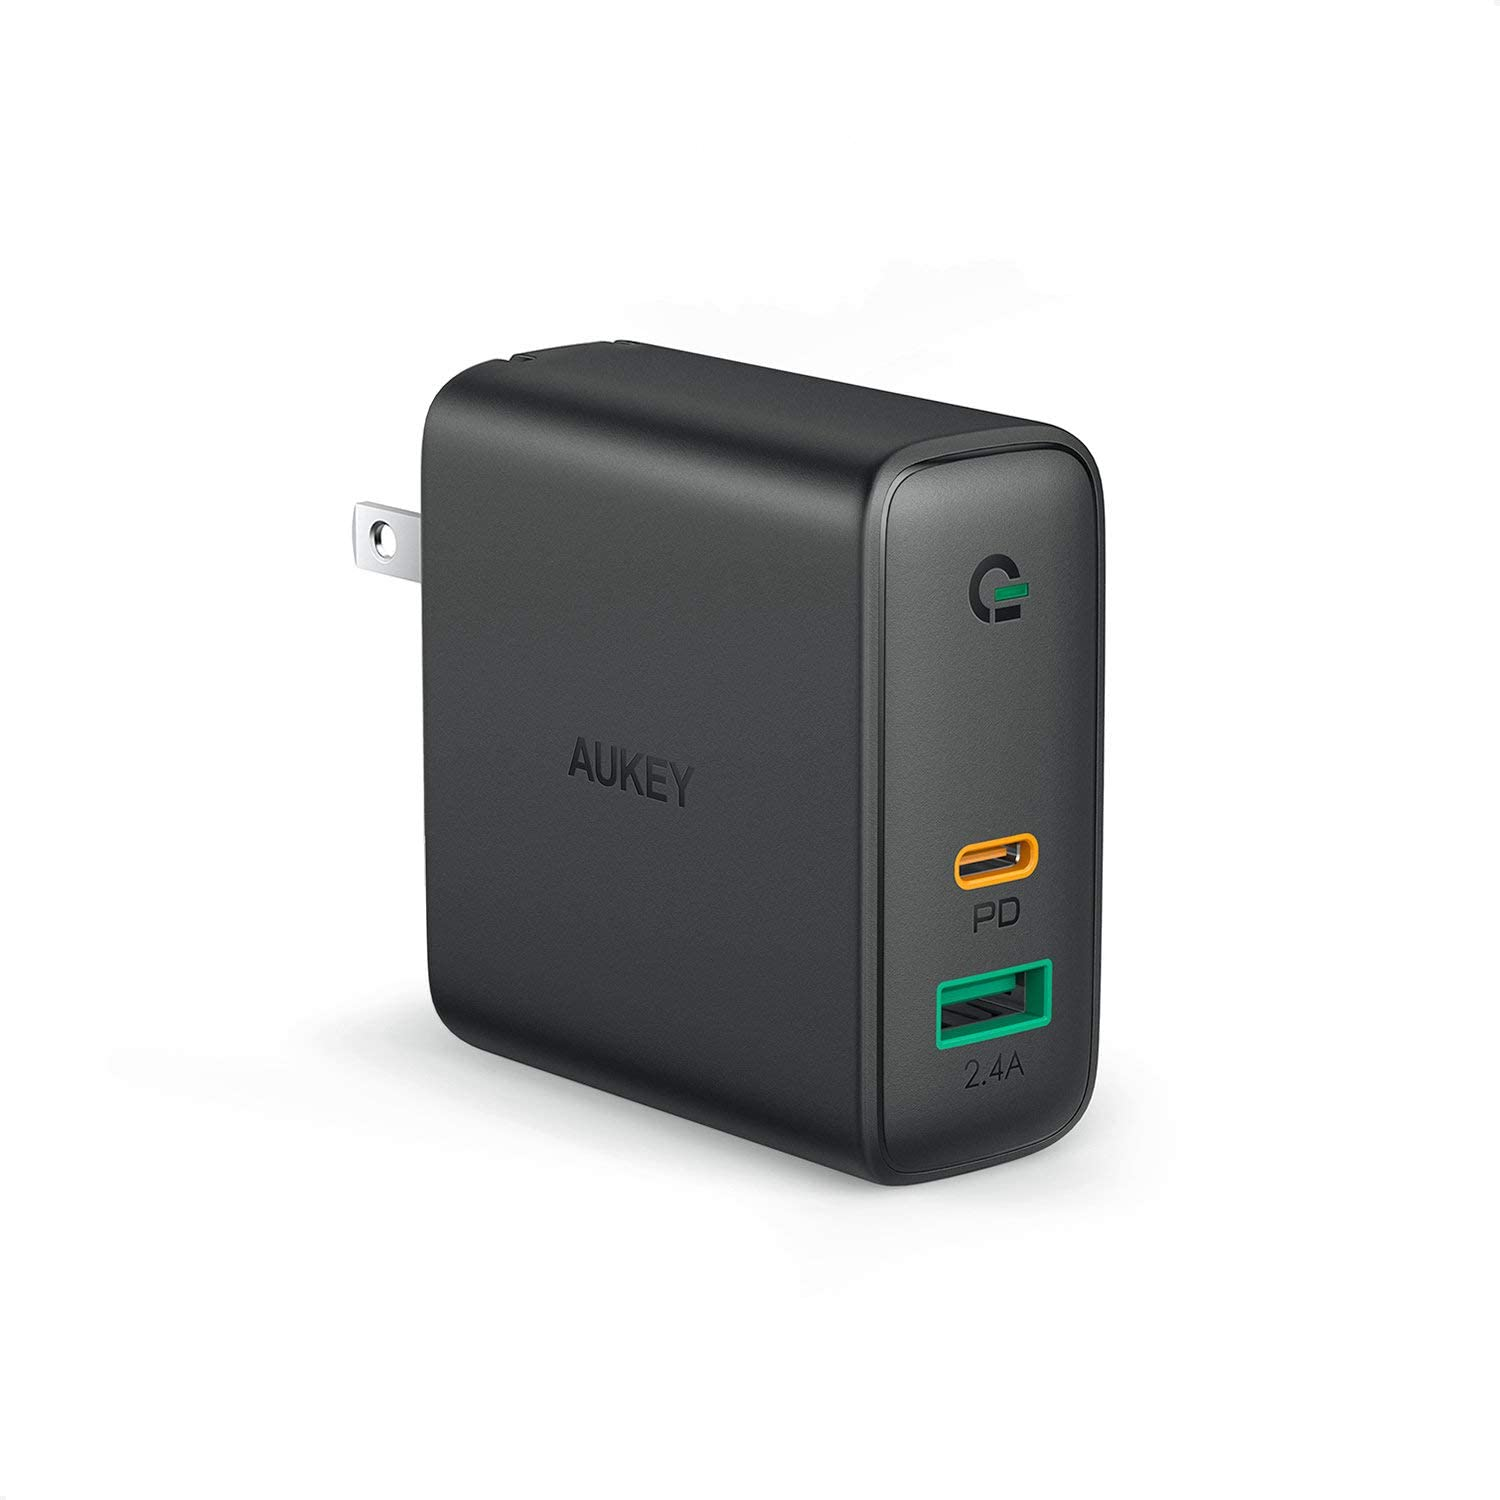 "AUKEY 60W PD Charger, USB C Wall Charger with Dynamic Detect & Power Delivery 3.0 [GaN Tech] Fast USB C Charger for MacBook Pro 13"", iPad Pro, iPhone 11 Pro Max, iPhone SE, Pixel 4/4X, Airpods Pro"